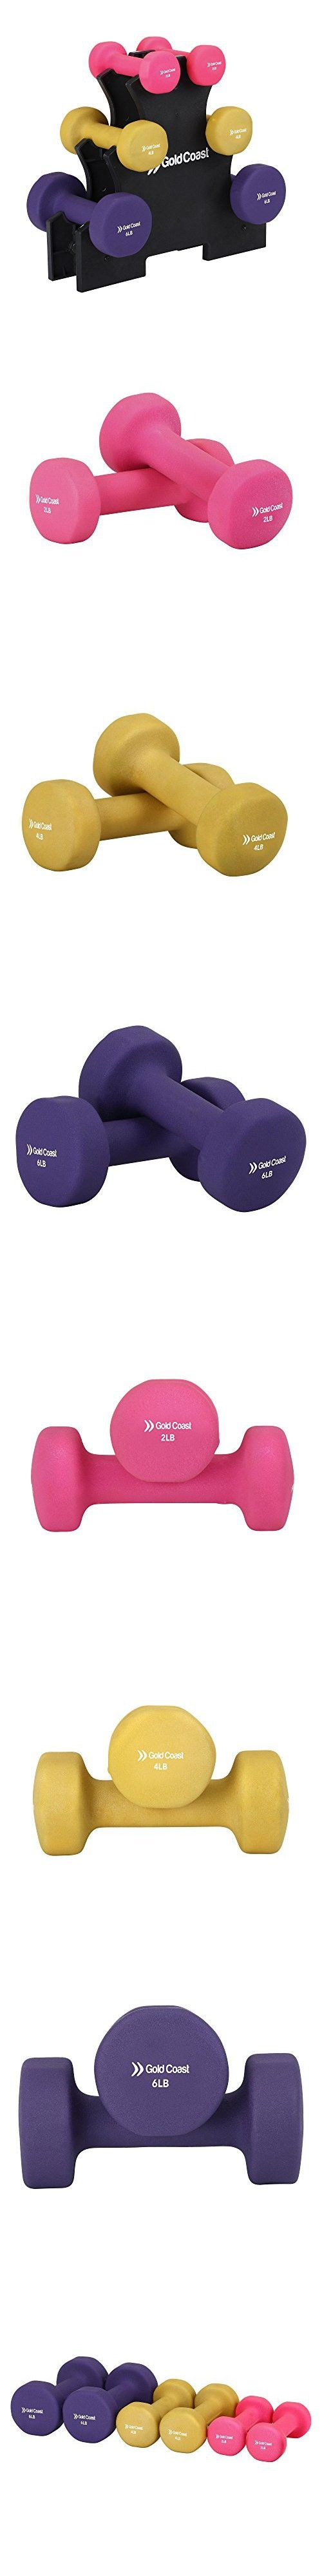 Gold Coast 24lb Dumbbell Weights Set with Rack - 2x2lb, 2x4lb and 2x6lb Neoprene Dumbbells